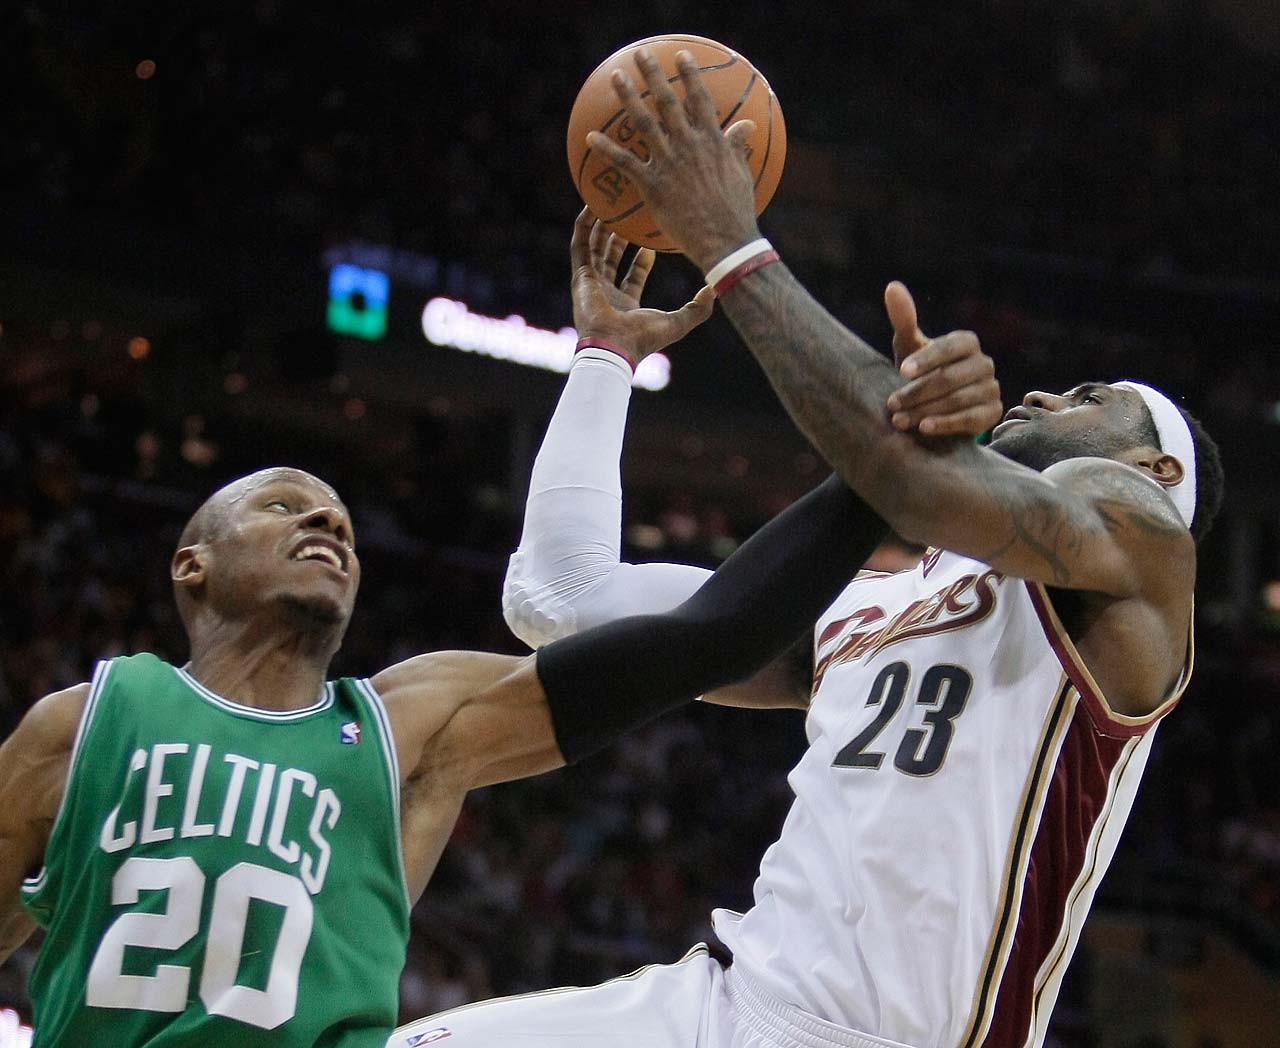 Boston Celtics' Ray Allen fouls LeBron James in Game 1 of a second-round playoff series on May 1, 2010, in Cleveland.